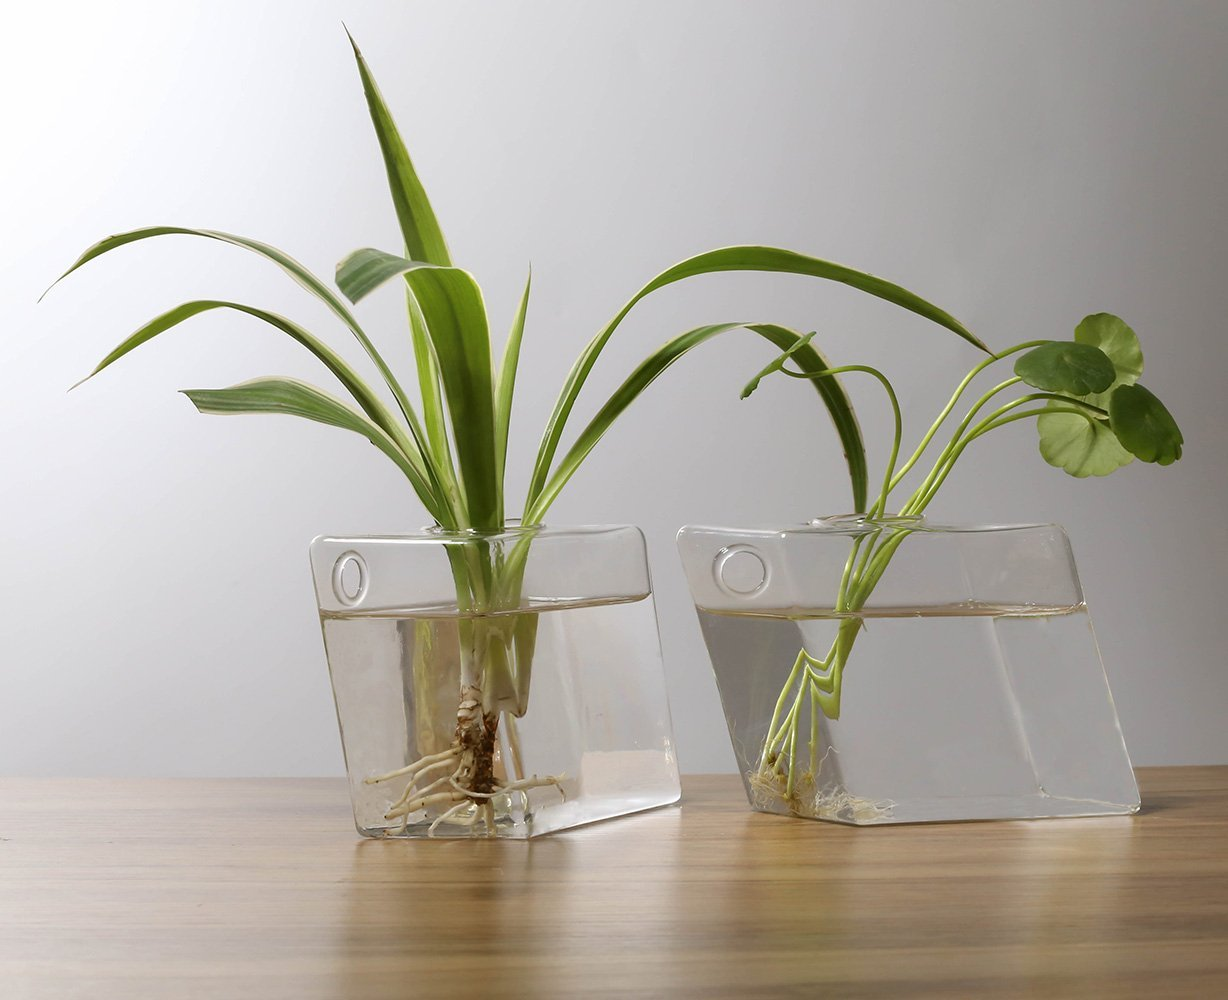 Mkono 2 Pcs Wall Hanging Plant Terrarium Glass Planter